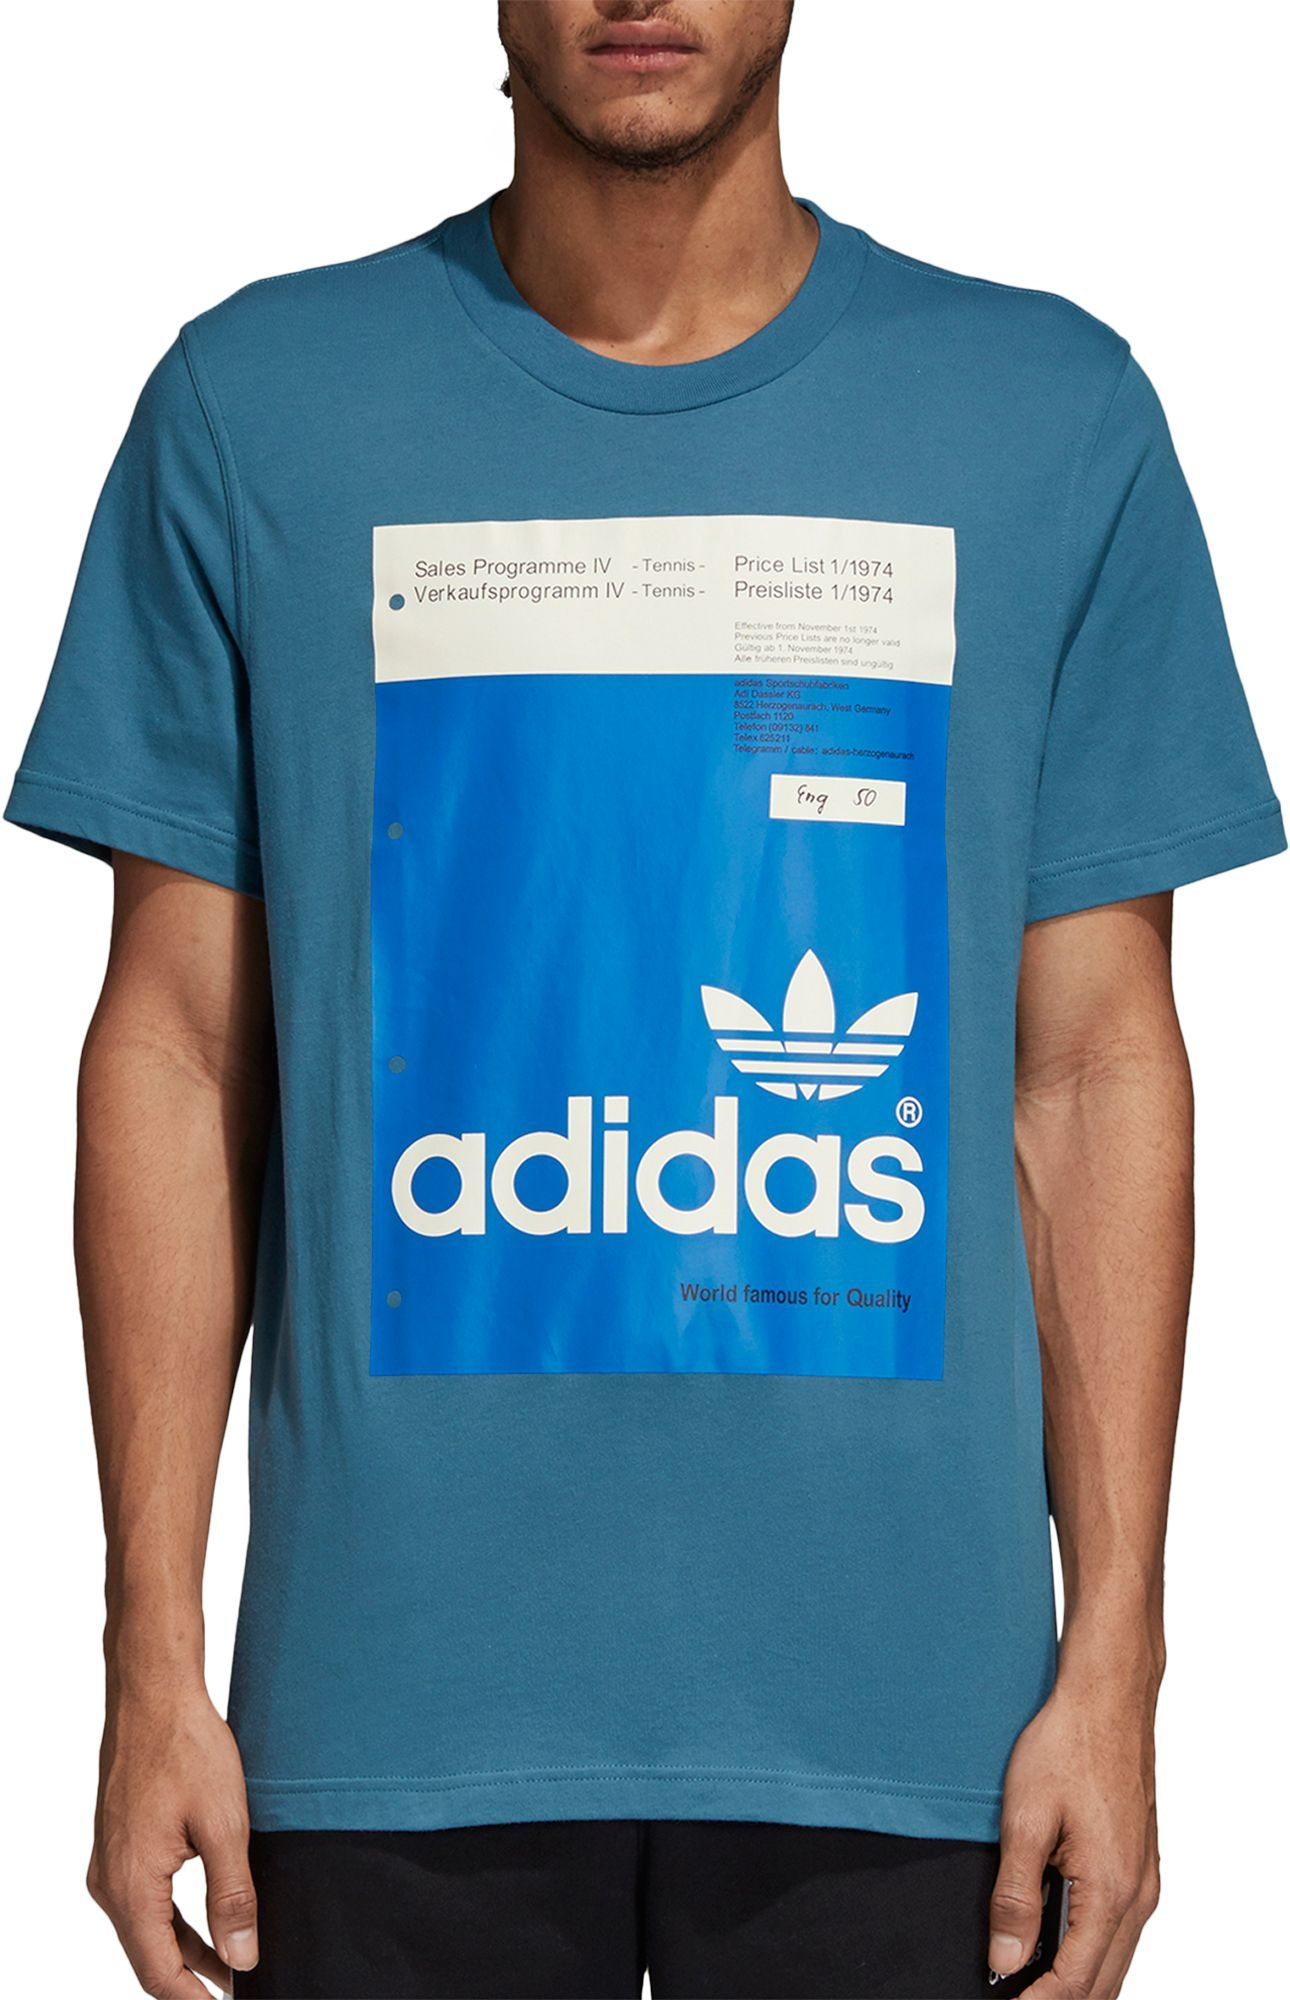 4e90fa5c2 adidas Originals Men's Pantone Graphic Tee in 2019 | Products ...